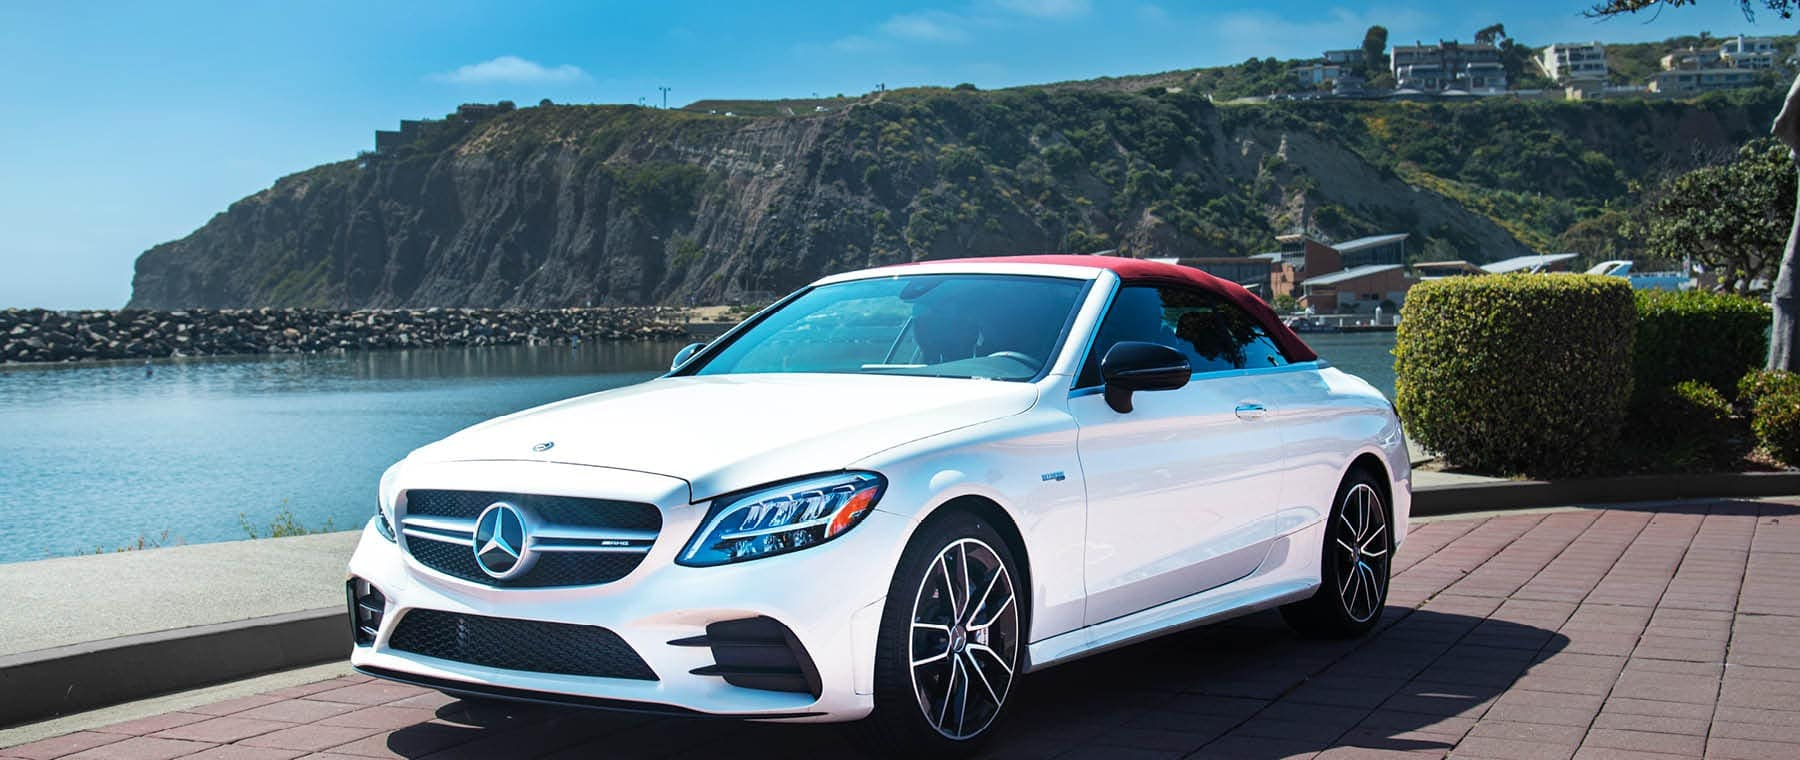 Mercedes-Benz of Foothill Ranch | New & Used Cars